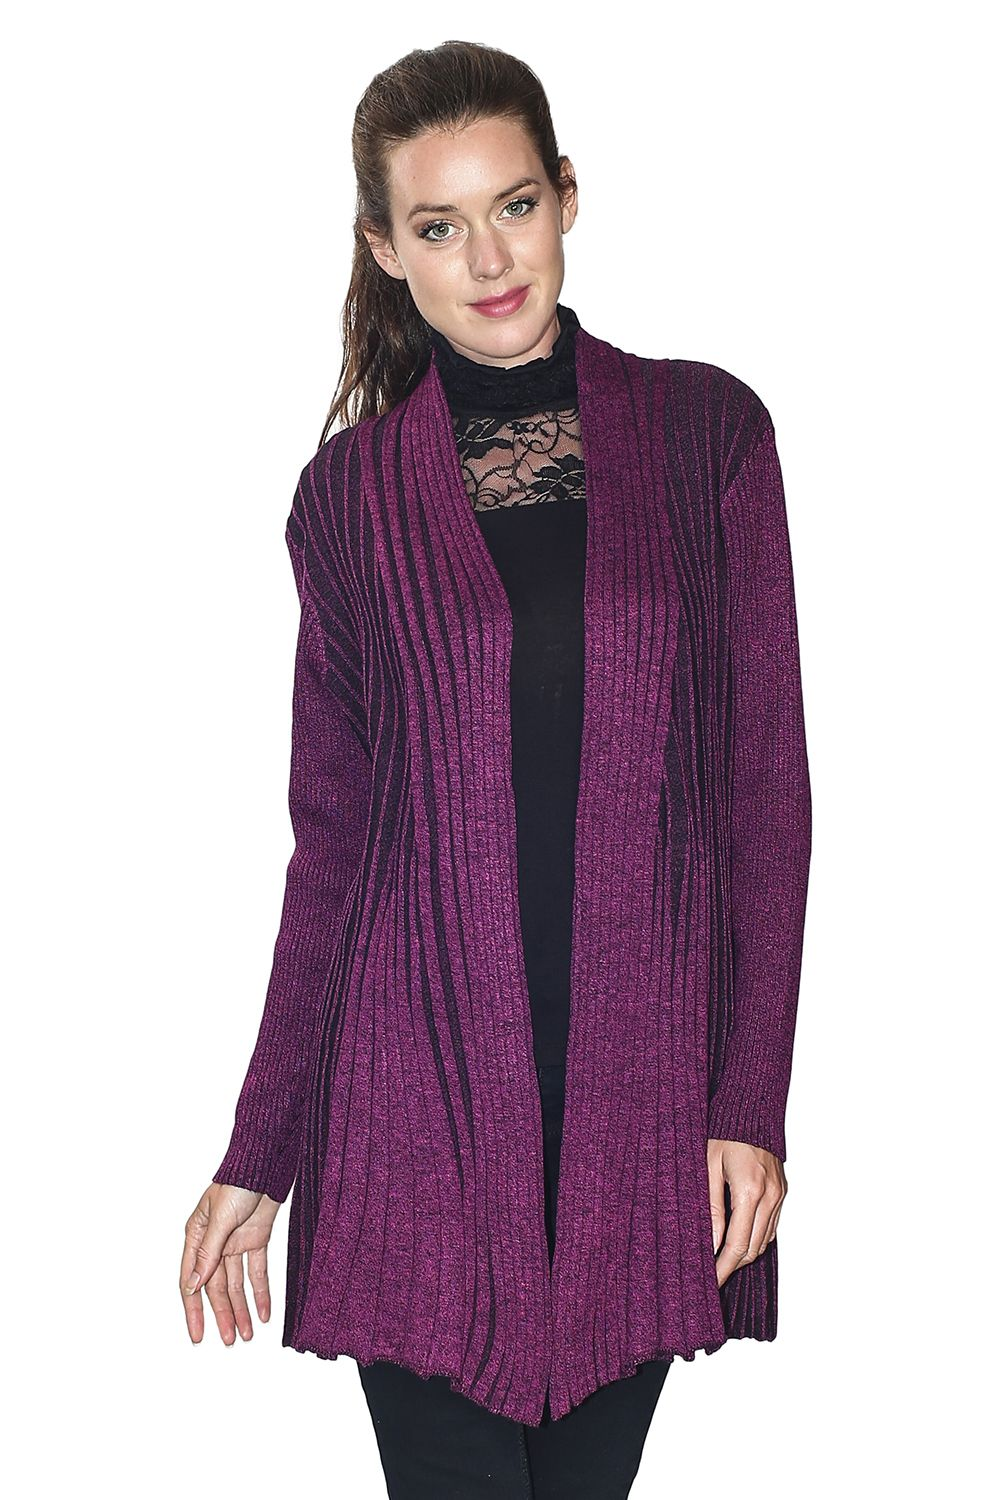 Assuili Long Sleeve Textured Mesh Open Cardigan (Large Fit) in Berry